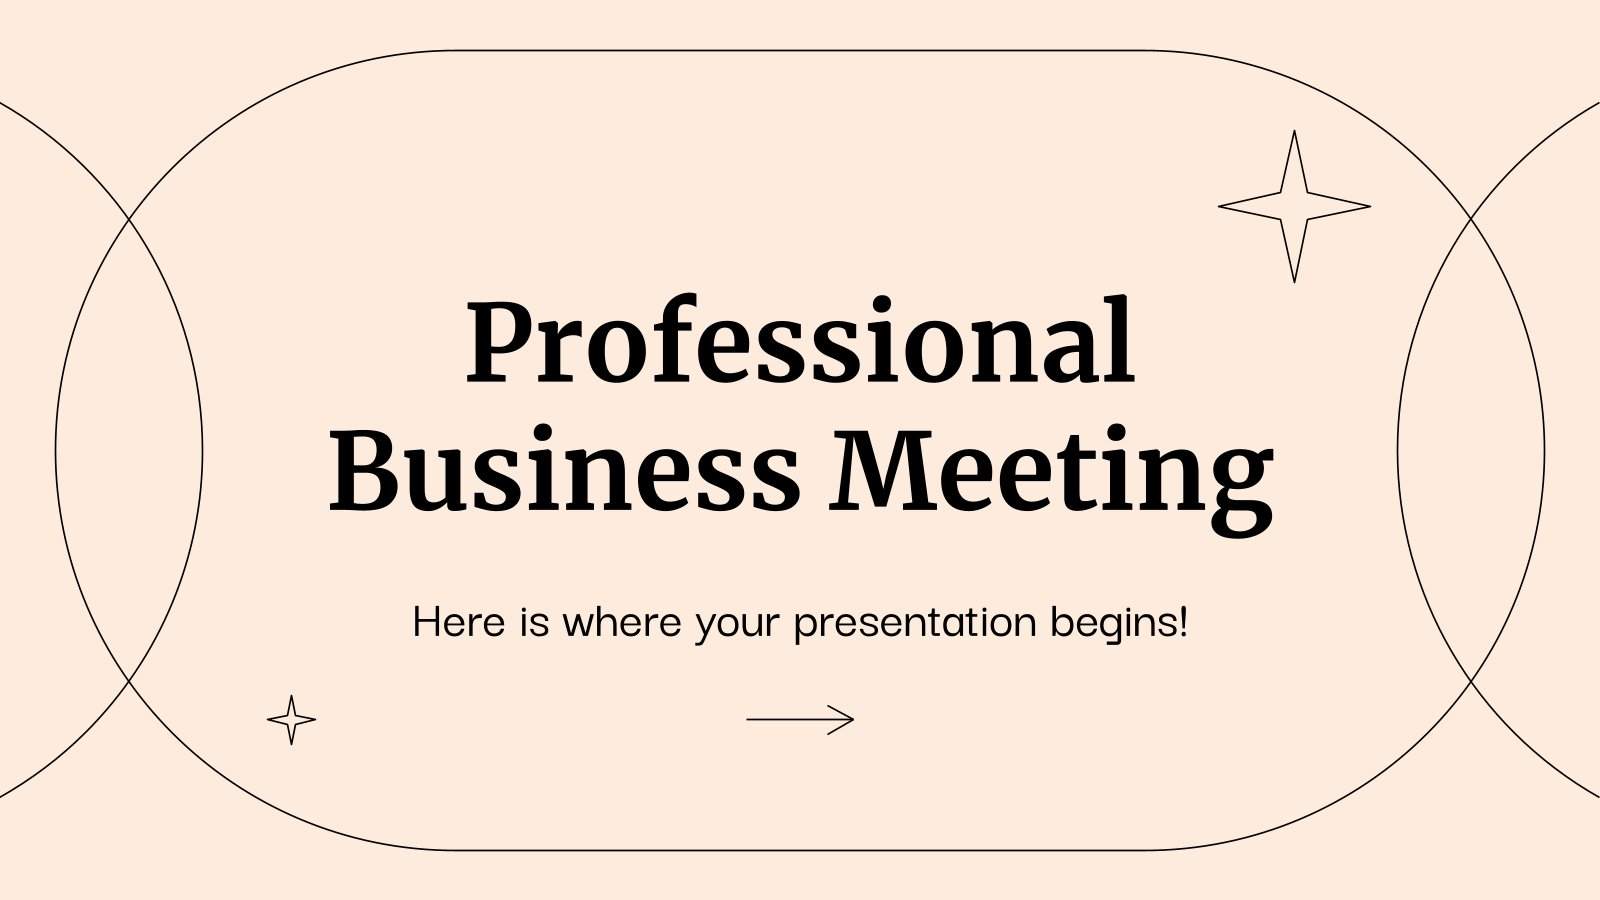 Professional Business Meeting presentation template